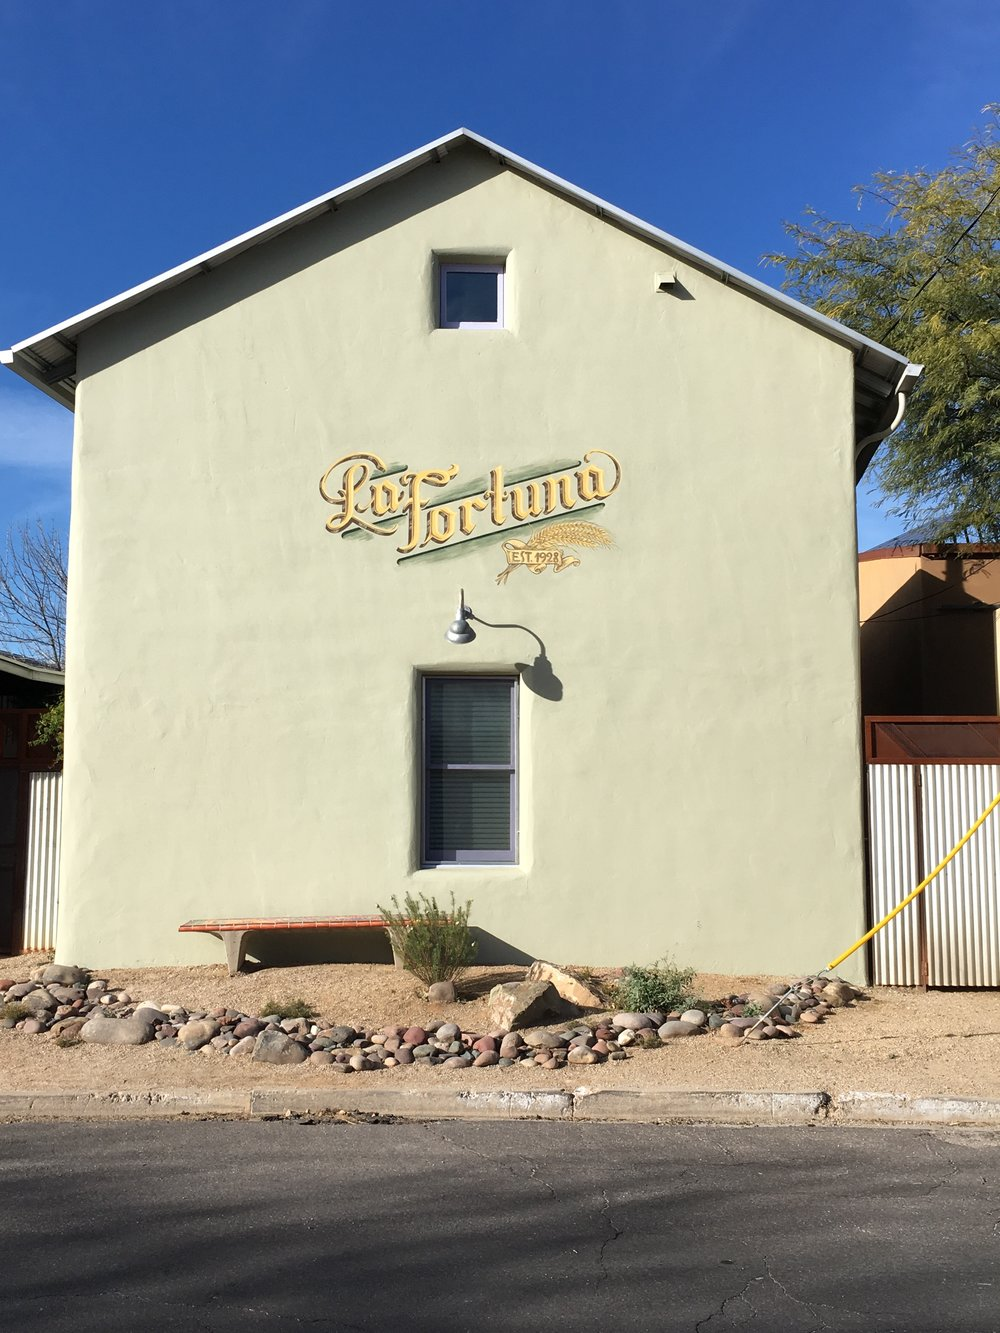 La Fortuna was at 638 S. Meyer in the early 1900s. This is not the original building (the current structure was built within the past 20 years), but I love that the owners are honoring the past.    The best story about La Fortuna appeared in the Tucson Citizen in 2006. It was written by freelance writer Carmen Villa Prezelski. She  interviewed  Tony Figueroa, the son of La Fortuna's founder, Luis Figueroa.    She said the bakery made both French and Mexican bread, empanadas, coyotas and cochitos. Now that is Tucson style.     (Tony died in 2015 and his  obituary , which mentioned  La Fortuna, was published in the Arizona Daily Star.)